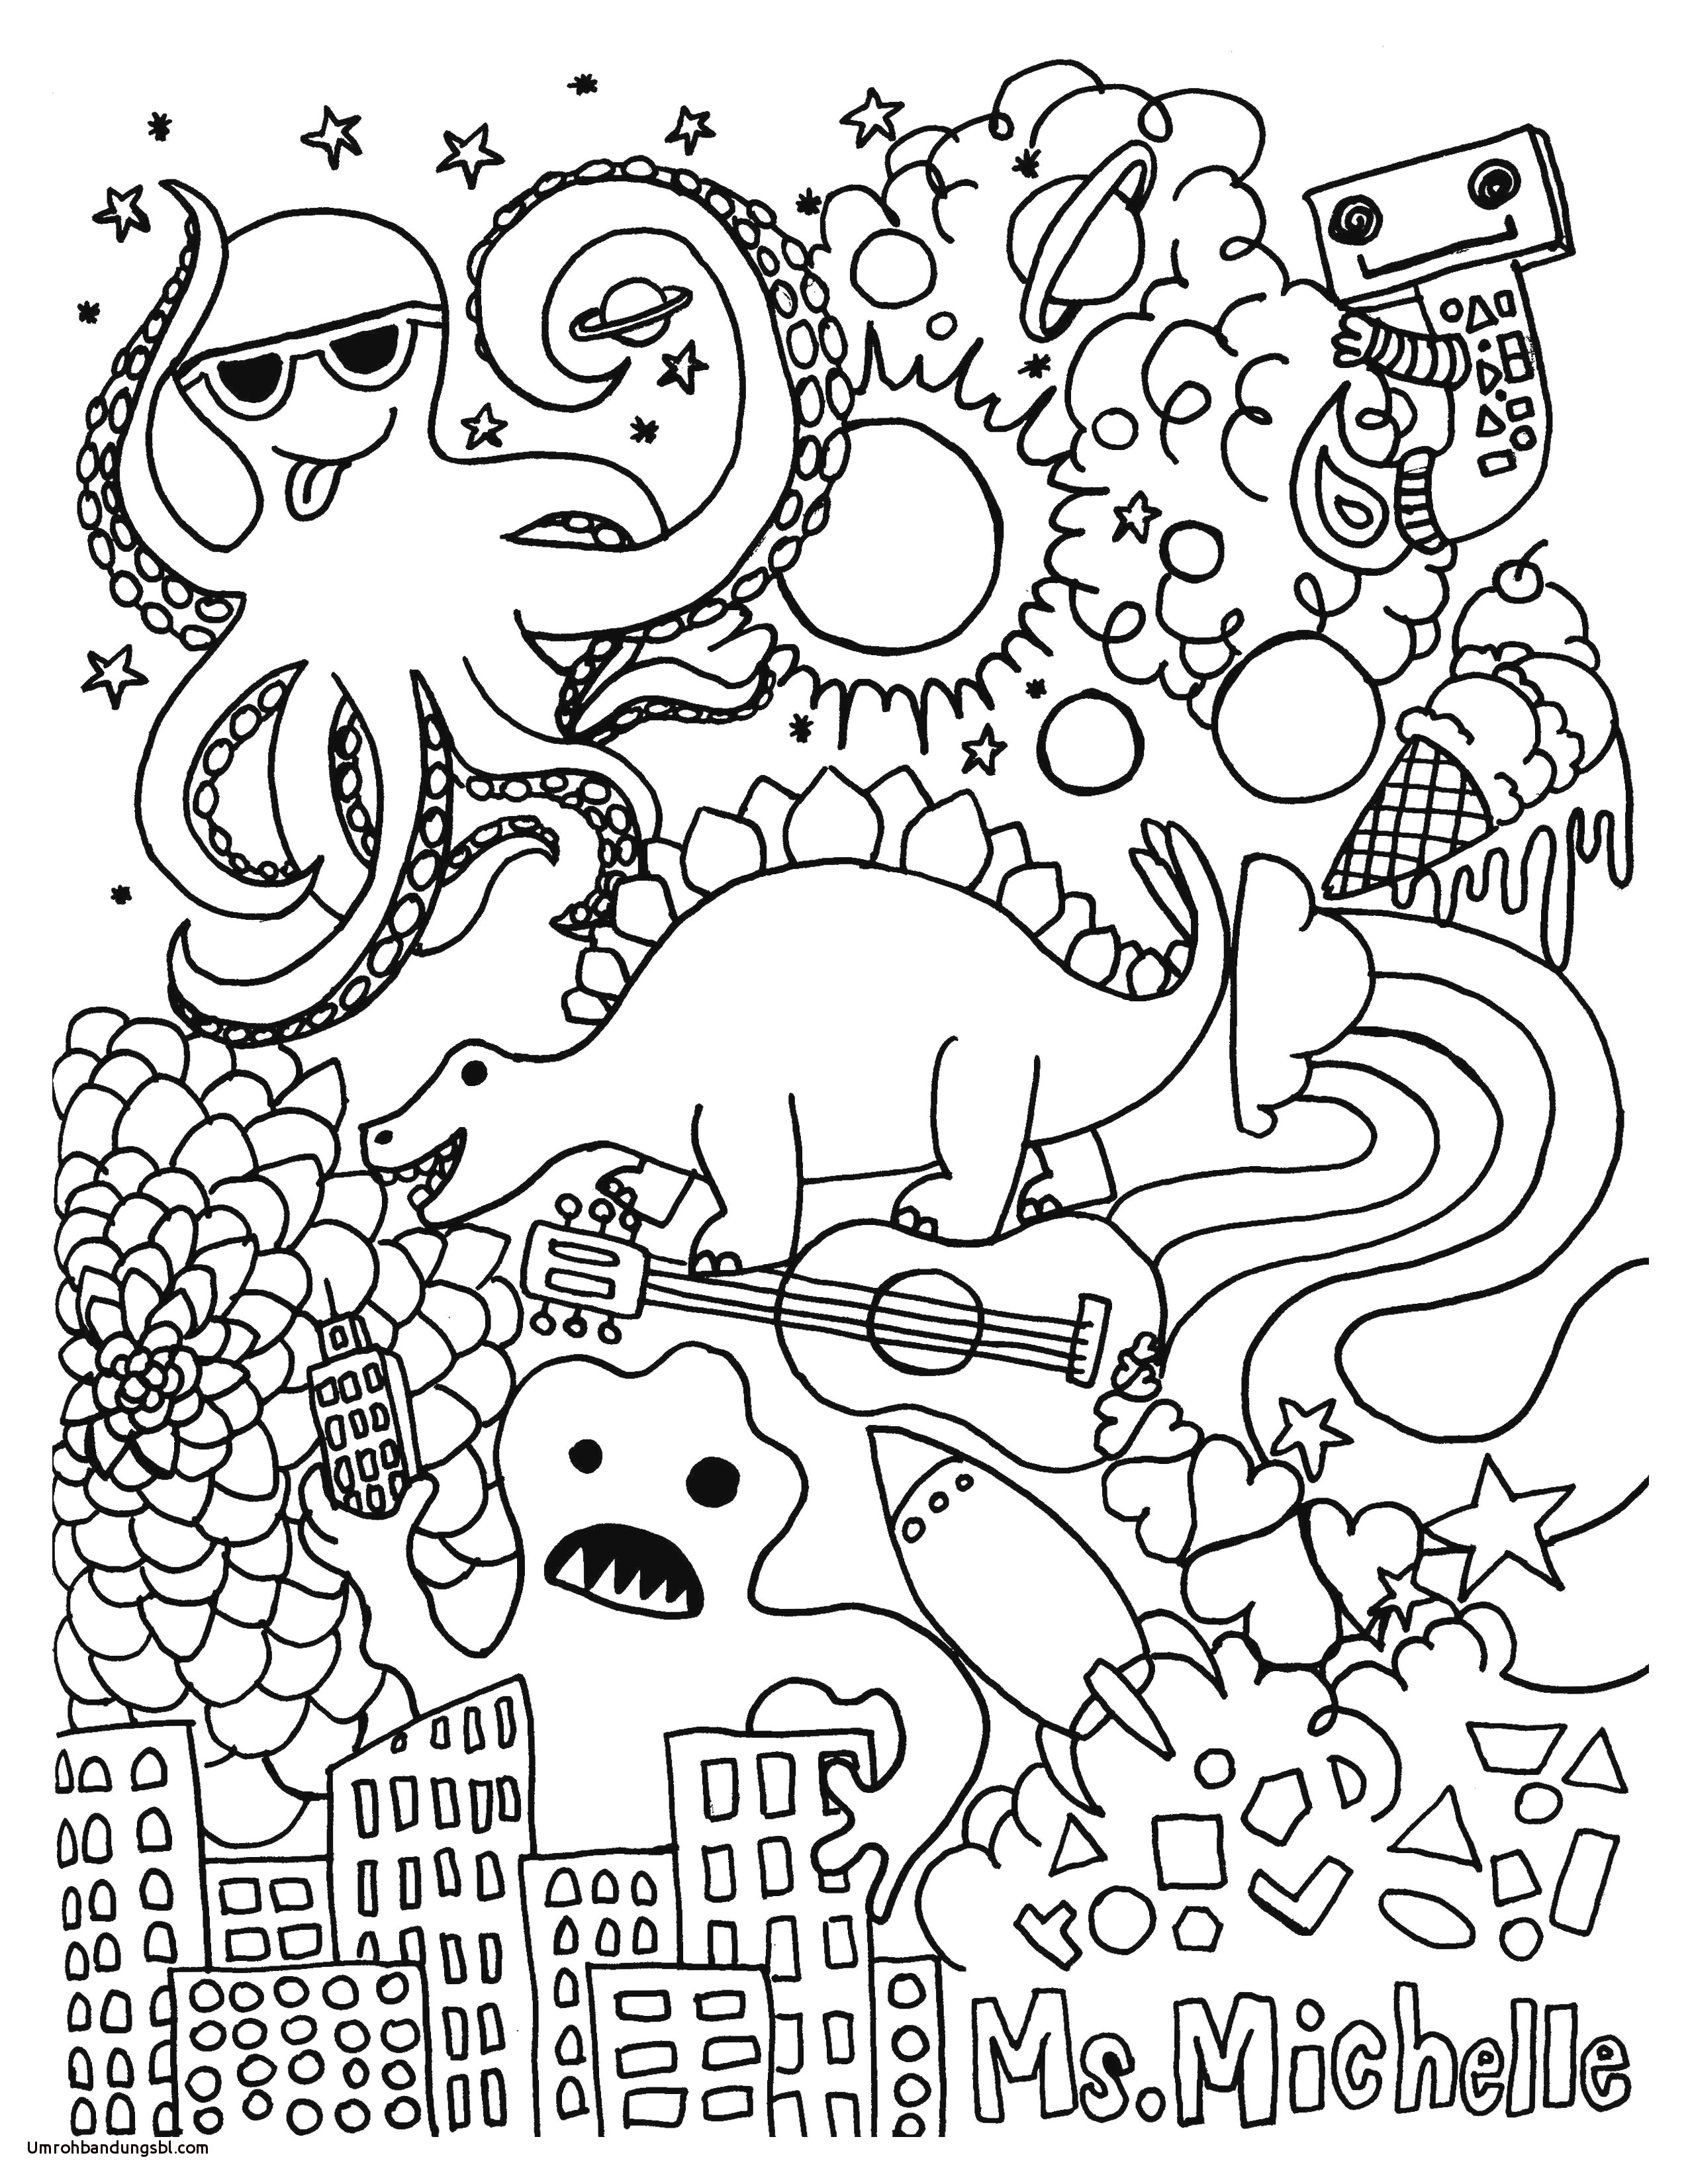 image relating to Printable Inspirational Coloring Pages identified as 22 Coloring Web pages Easter Printable Gallery - Coloring Sheets